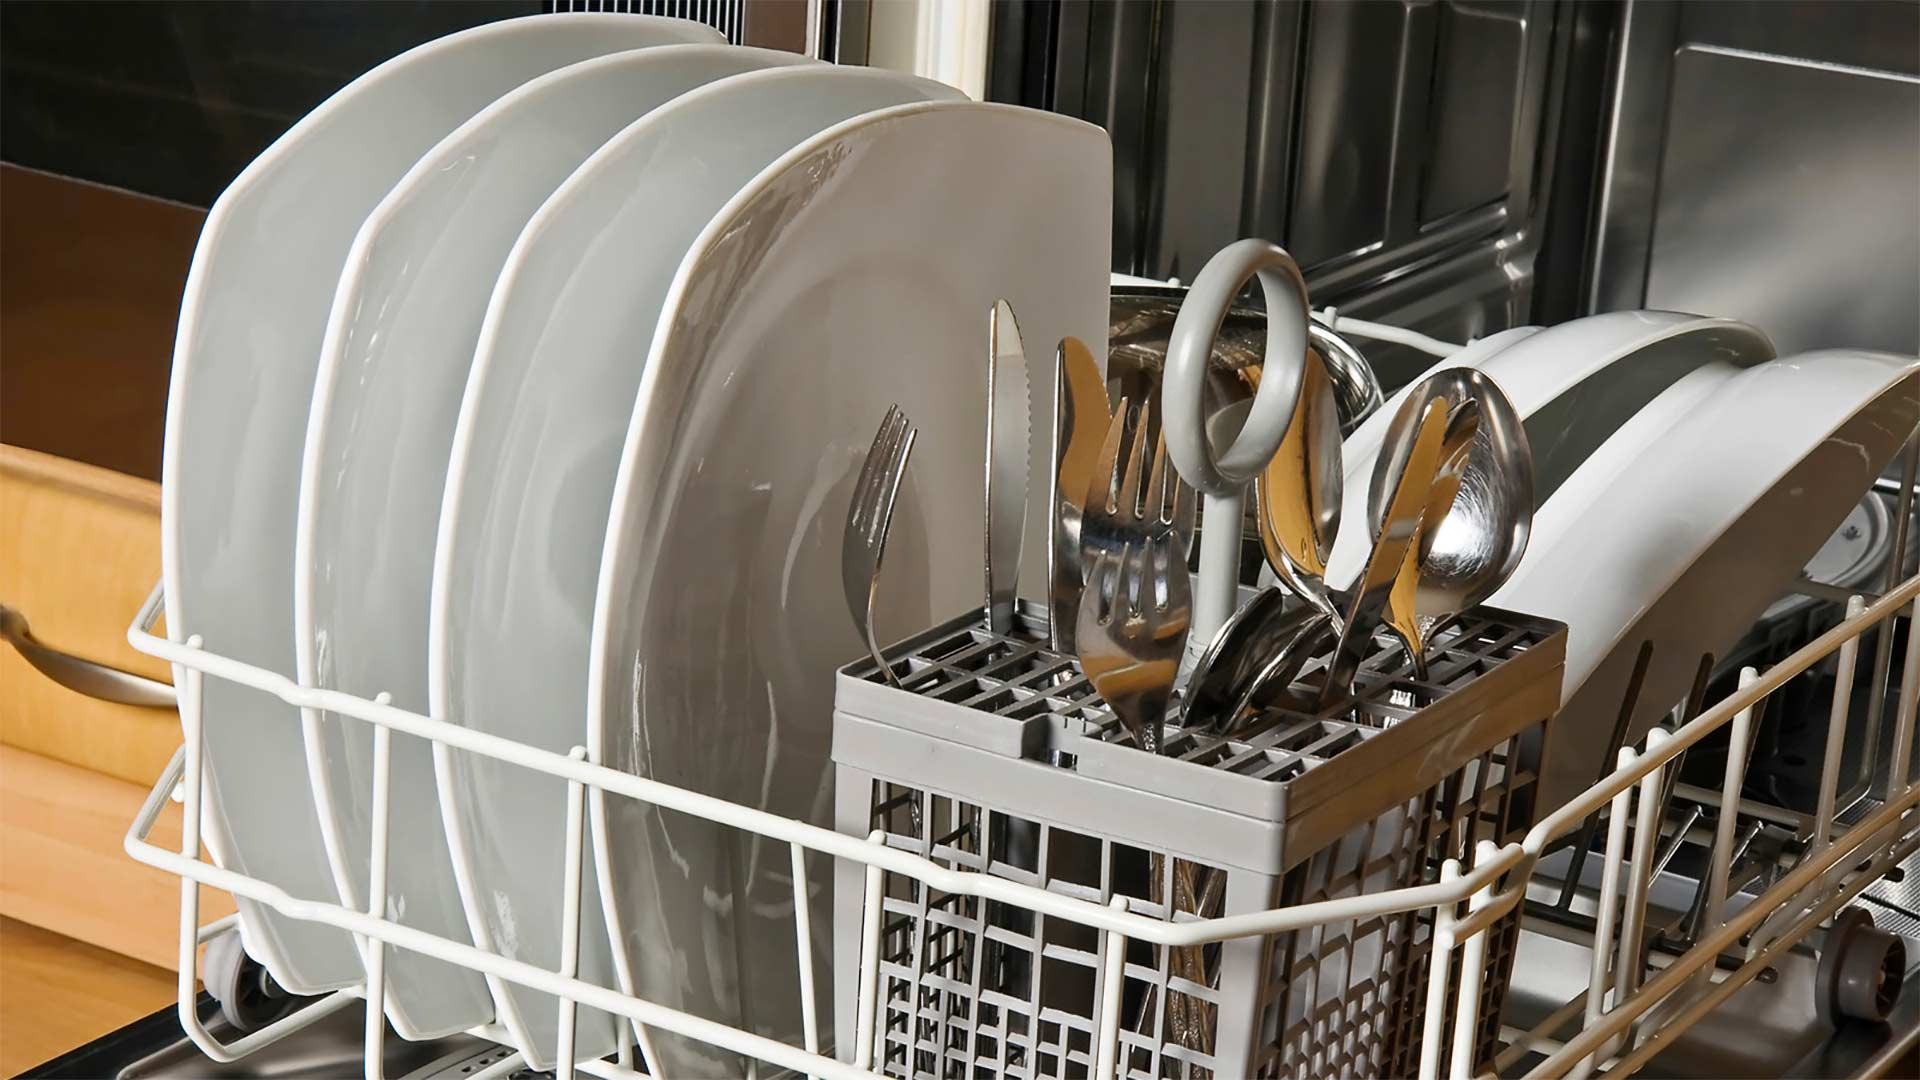 Dishes and flatware waiting to be washed in a dishwasher